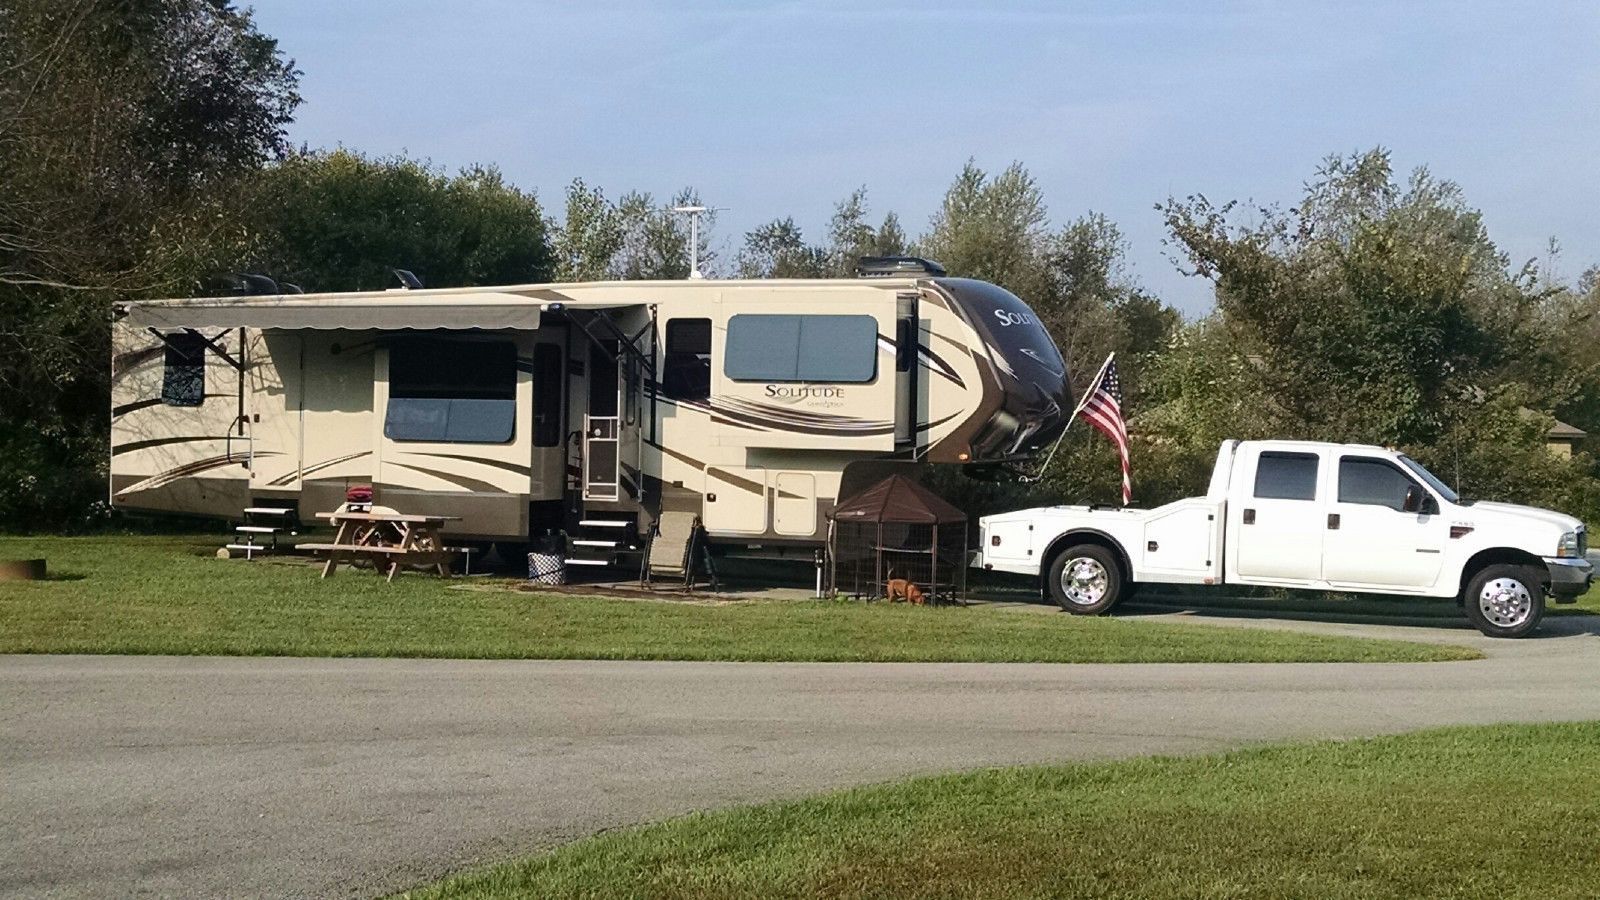 2015 Grand Design Solitude 379 Fl And 2004 Ford F 550 For Sale